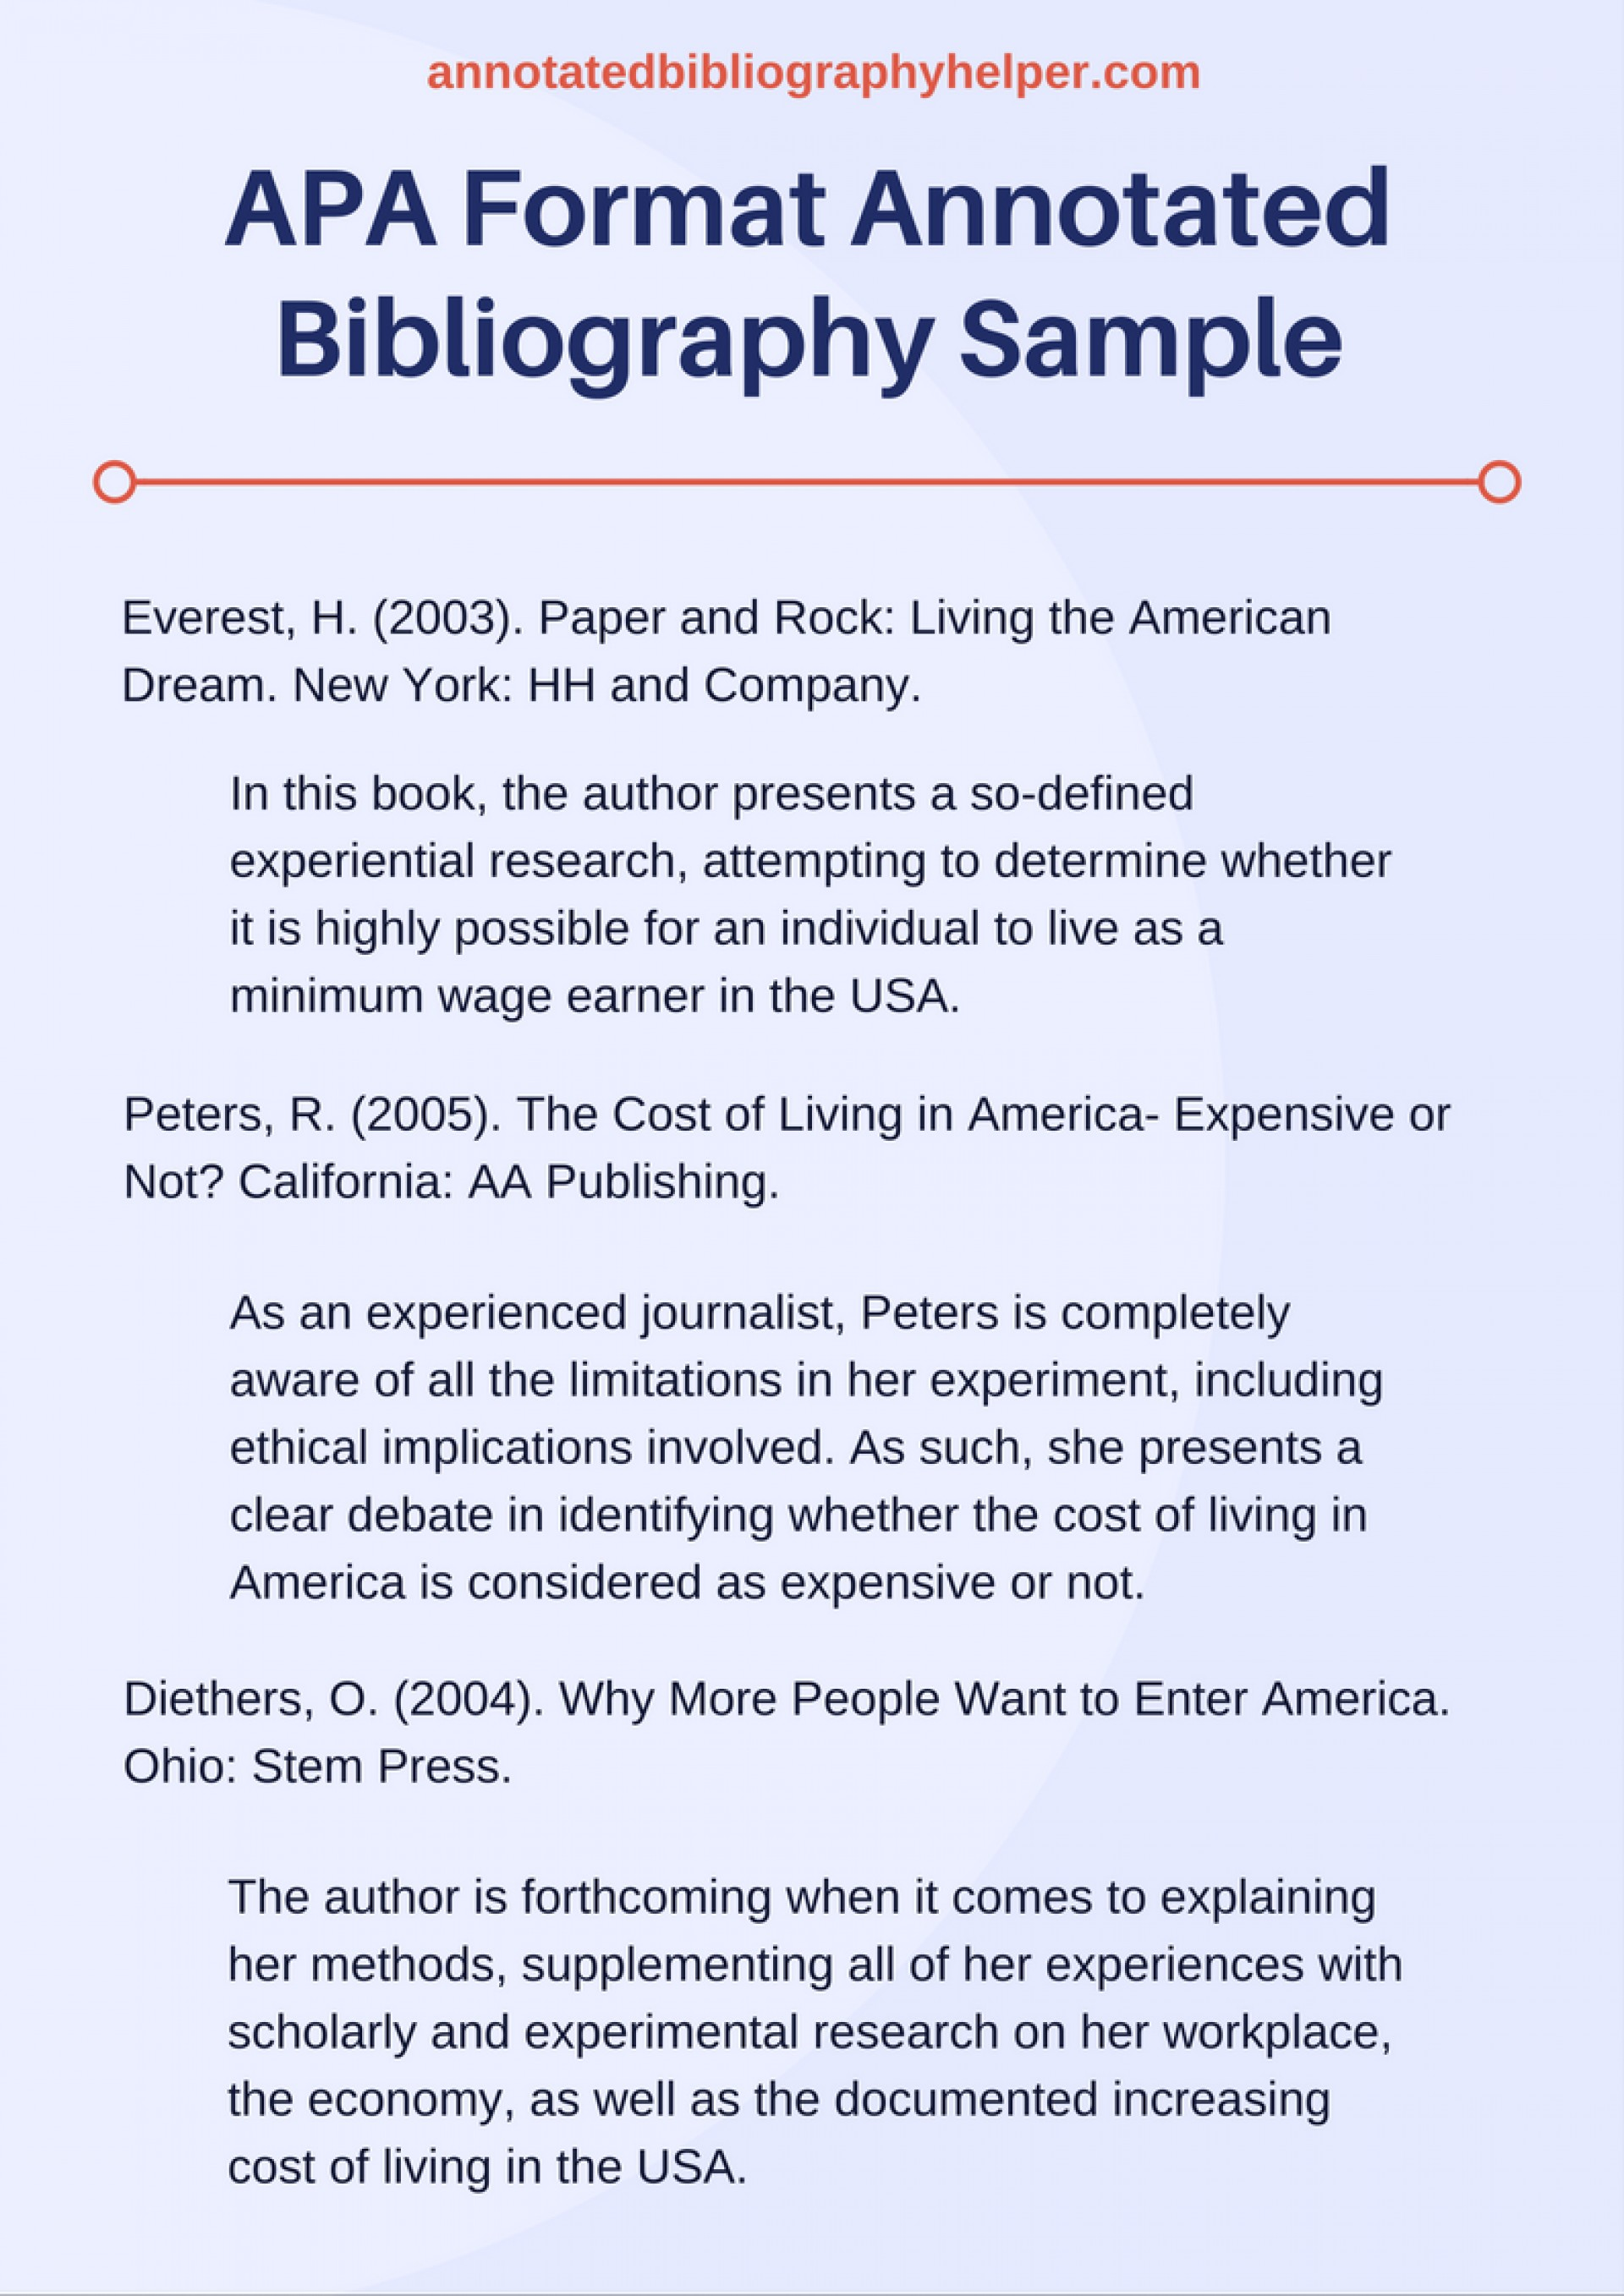 002 How To Write Bibliography For Research Paper Apa Exceptional A Style 1920